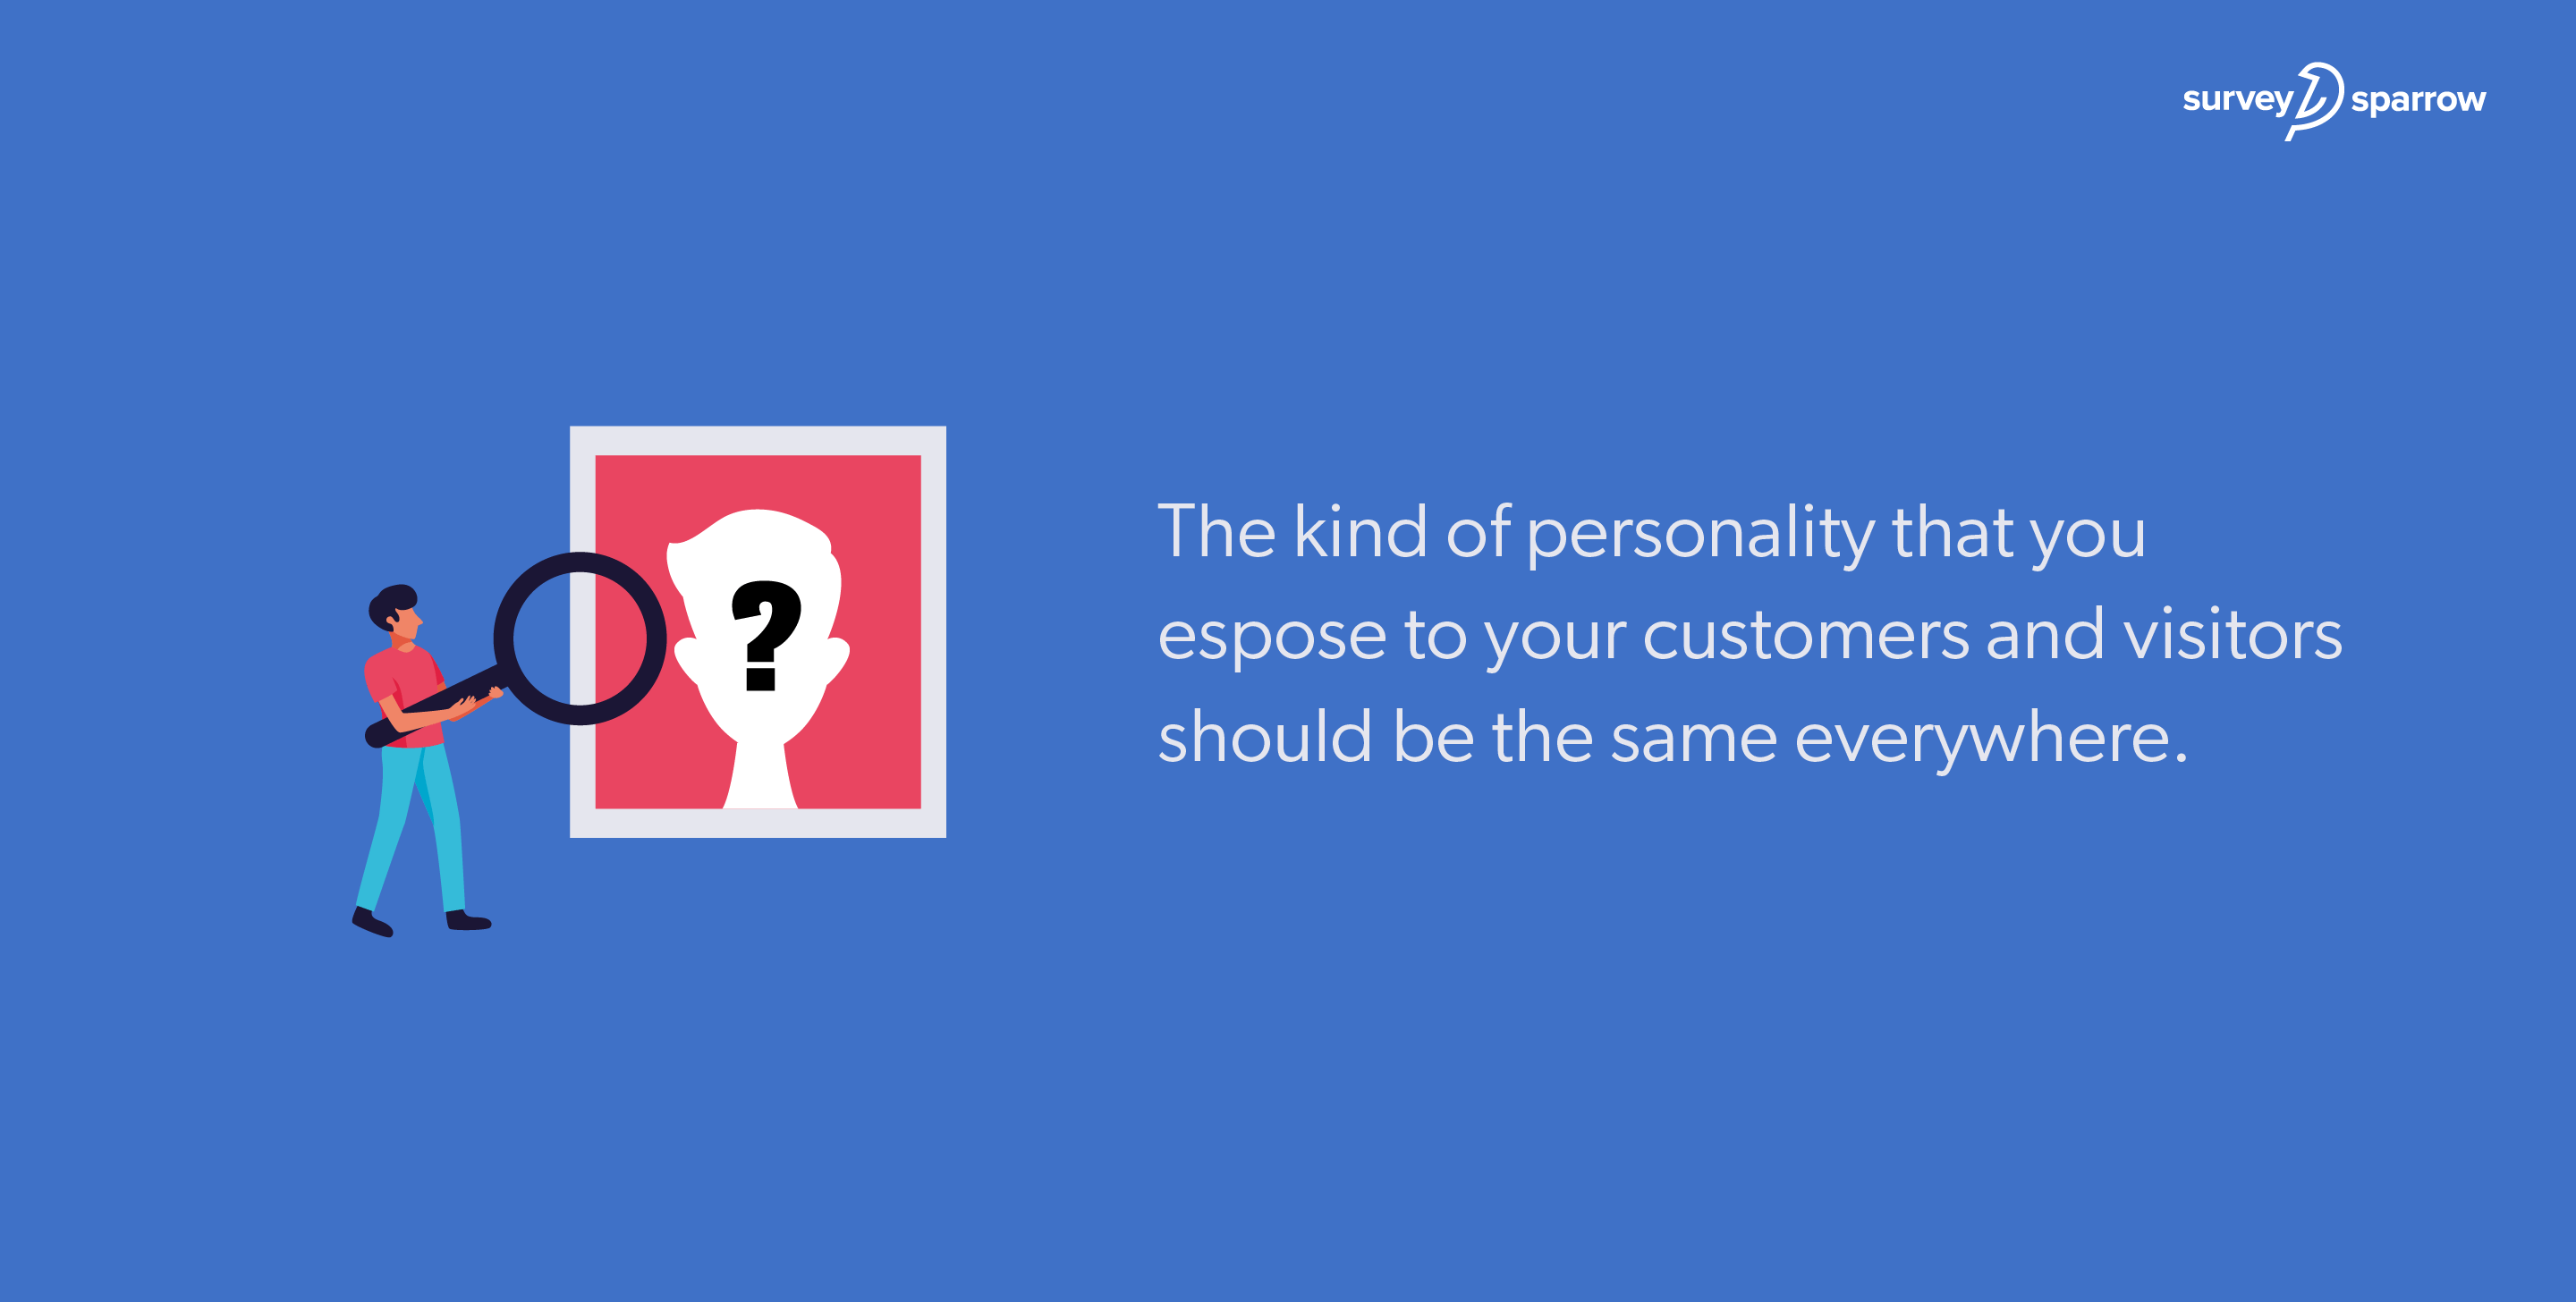 The kind of personality that you espose to your customers and visitors should be the same everywhere.